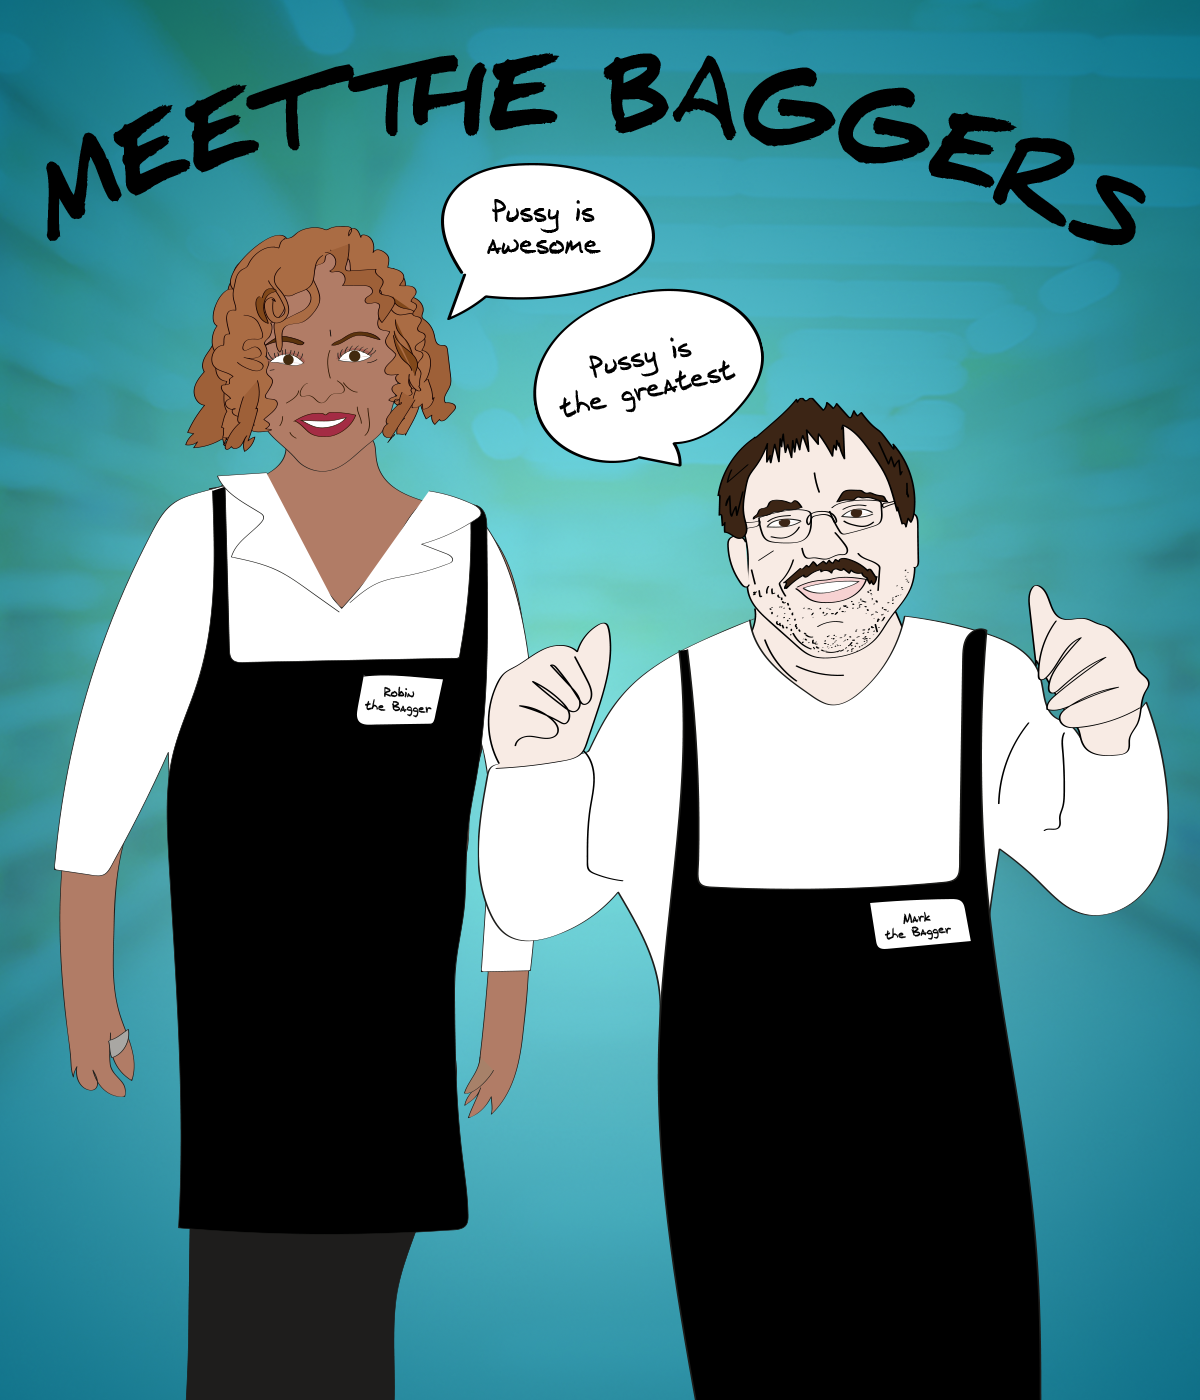 Since Robin lost her voice this week, she sounds a lot like Mark the Bagger!